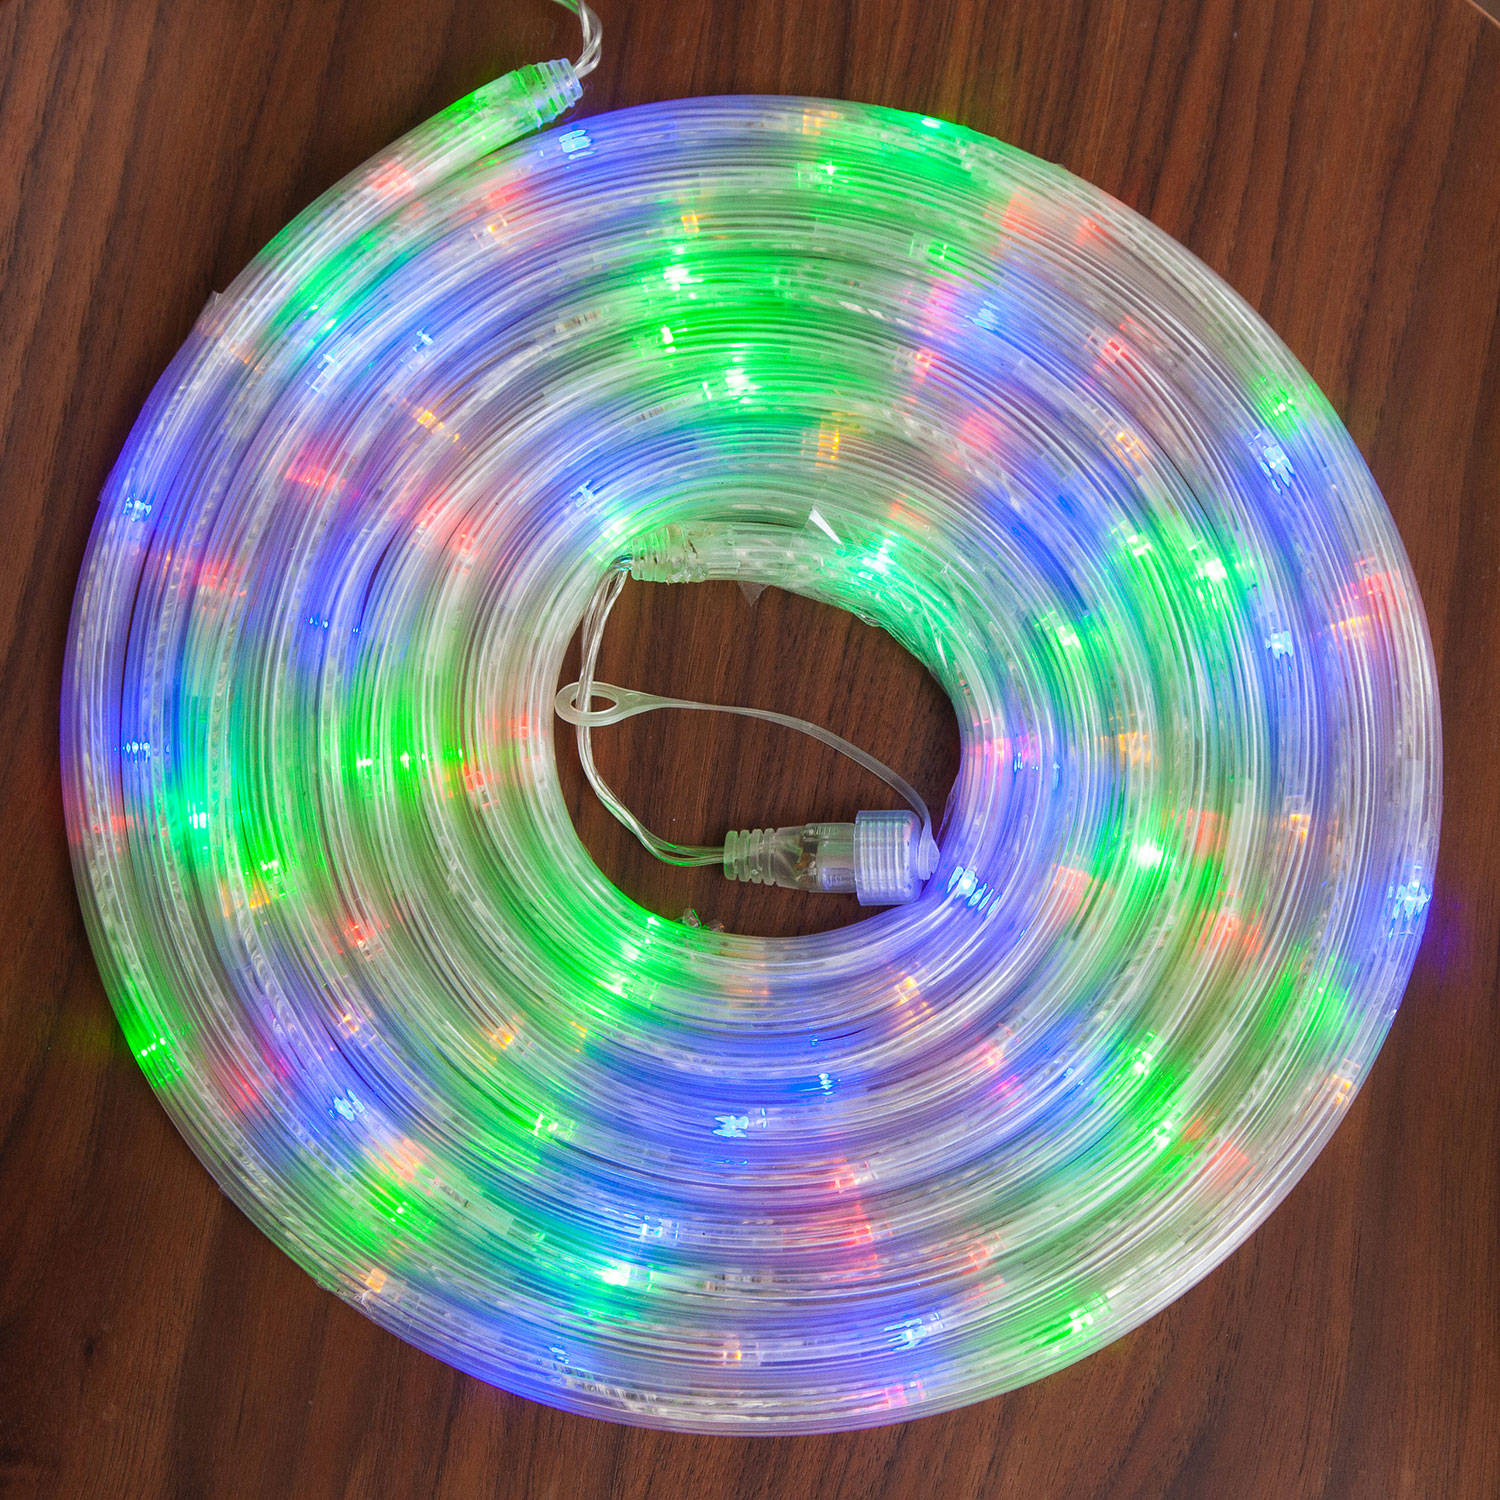 Lights.com String Lights Rope Lights Color Changing 100 LED Rope Lights for Connectable System